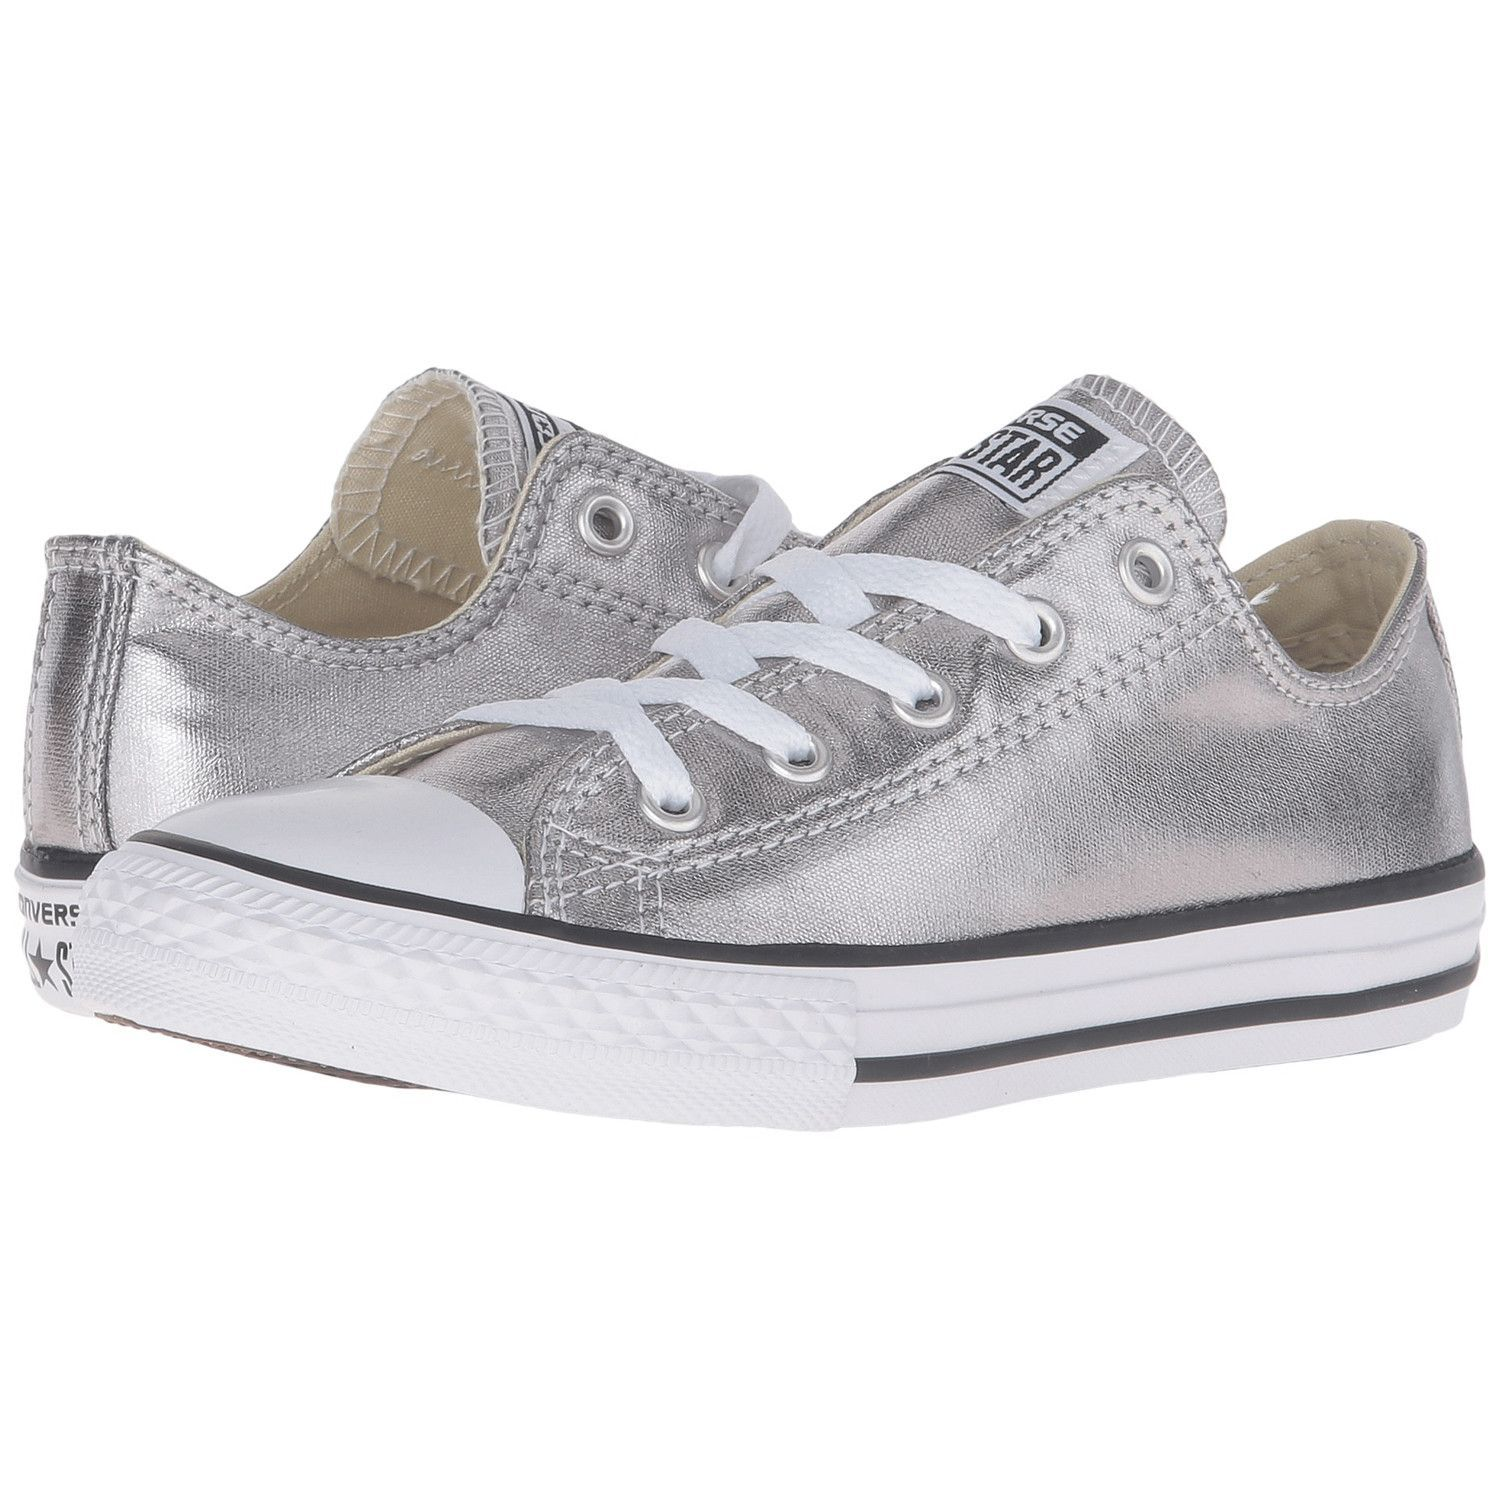 84702323a9bd CONVERSE Chuck Taylor Metallic Canvas Ox Kids Toddler